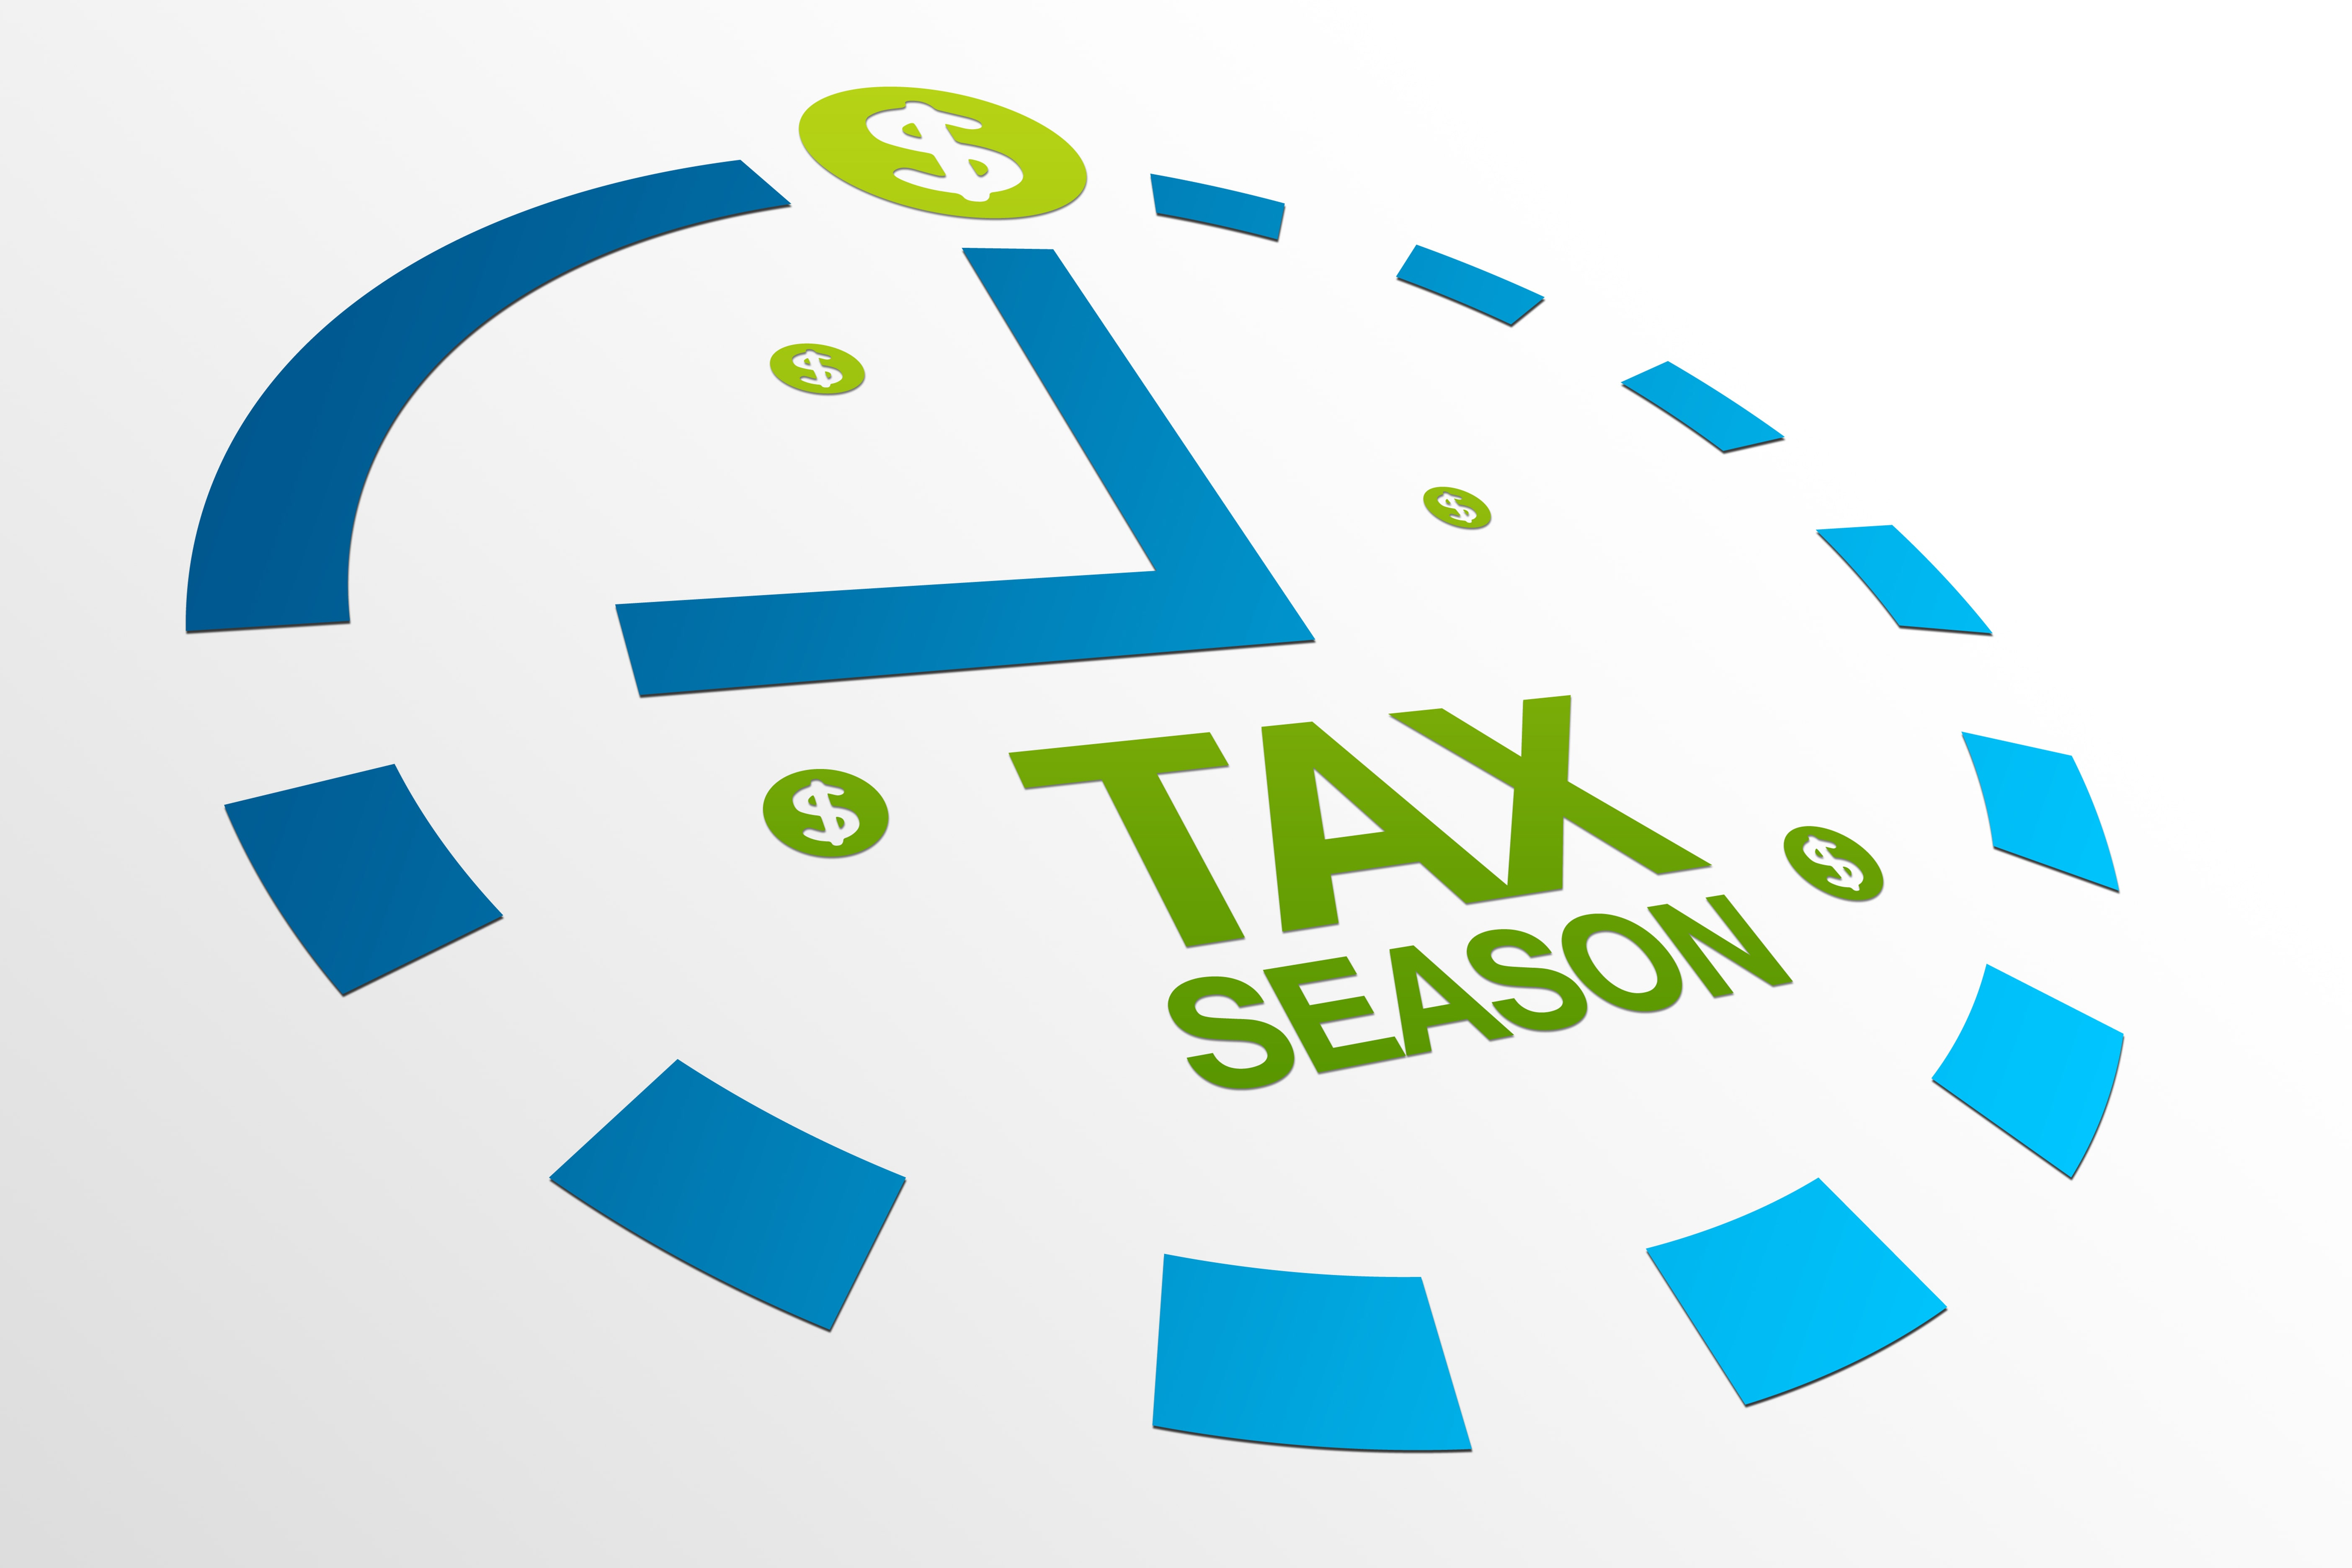 Encouraging Tips for this Tax Season